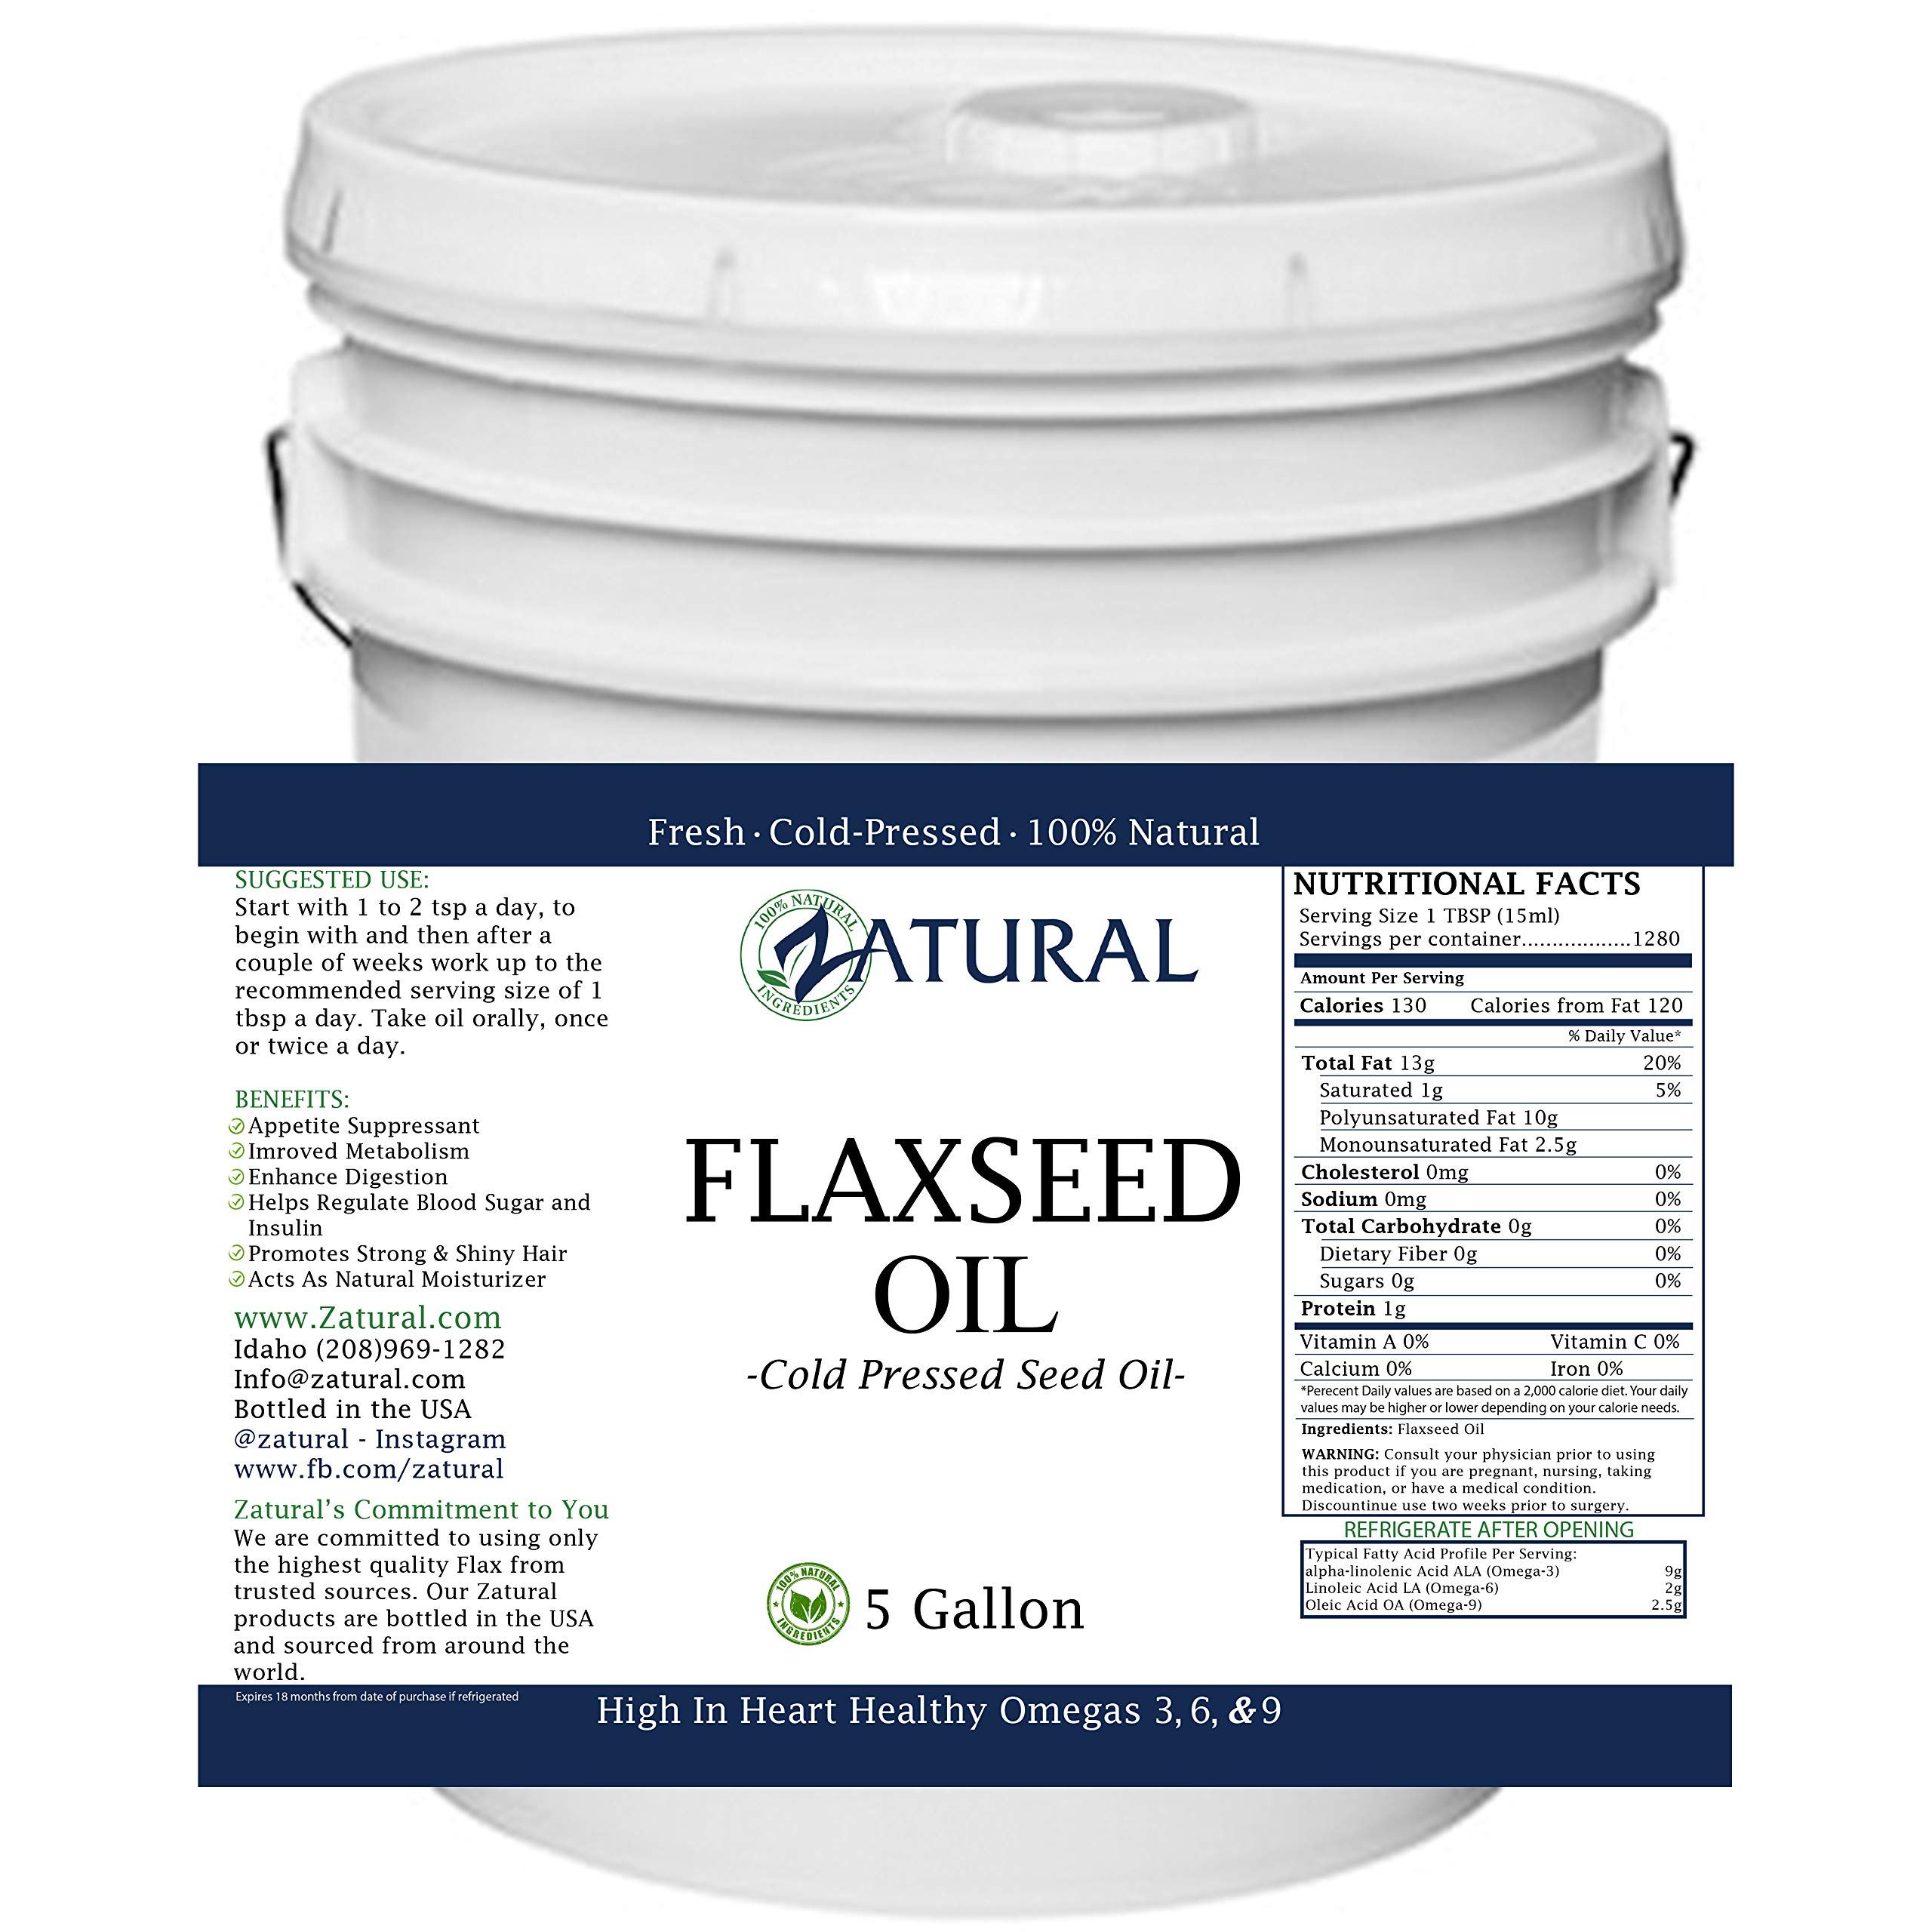 FlaxSeed Oil - 100% Pure Flax Seed Oil - 0 Additives - 0 Fillers - Cold Pressed (640 Ounce (5 Gallon))